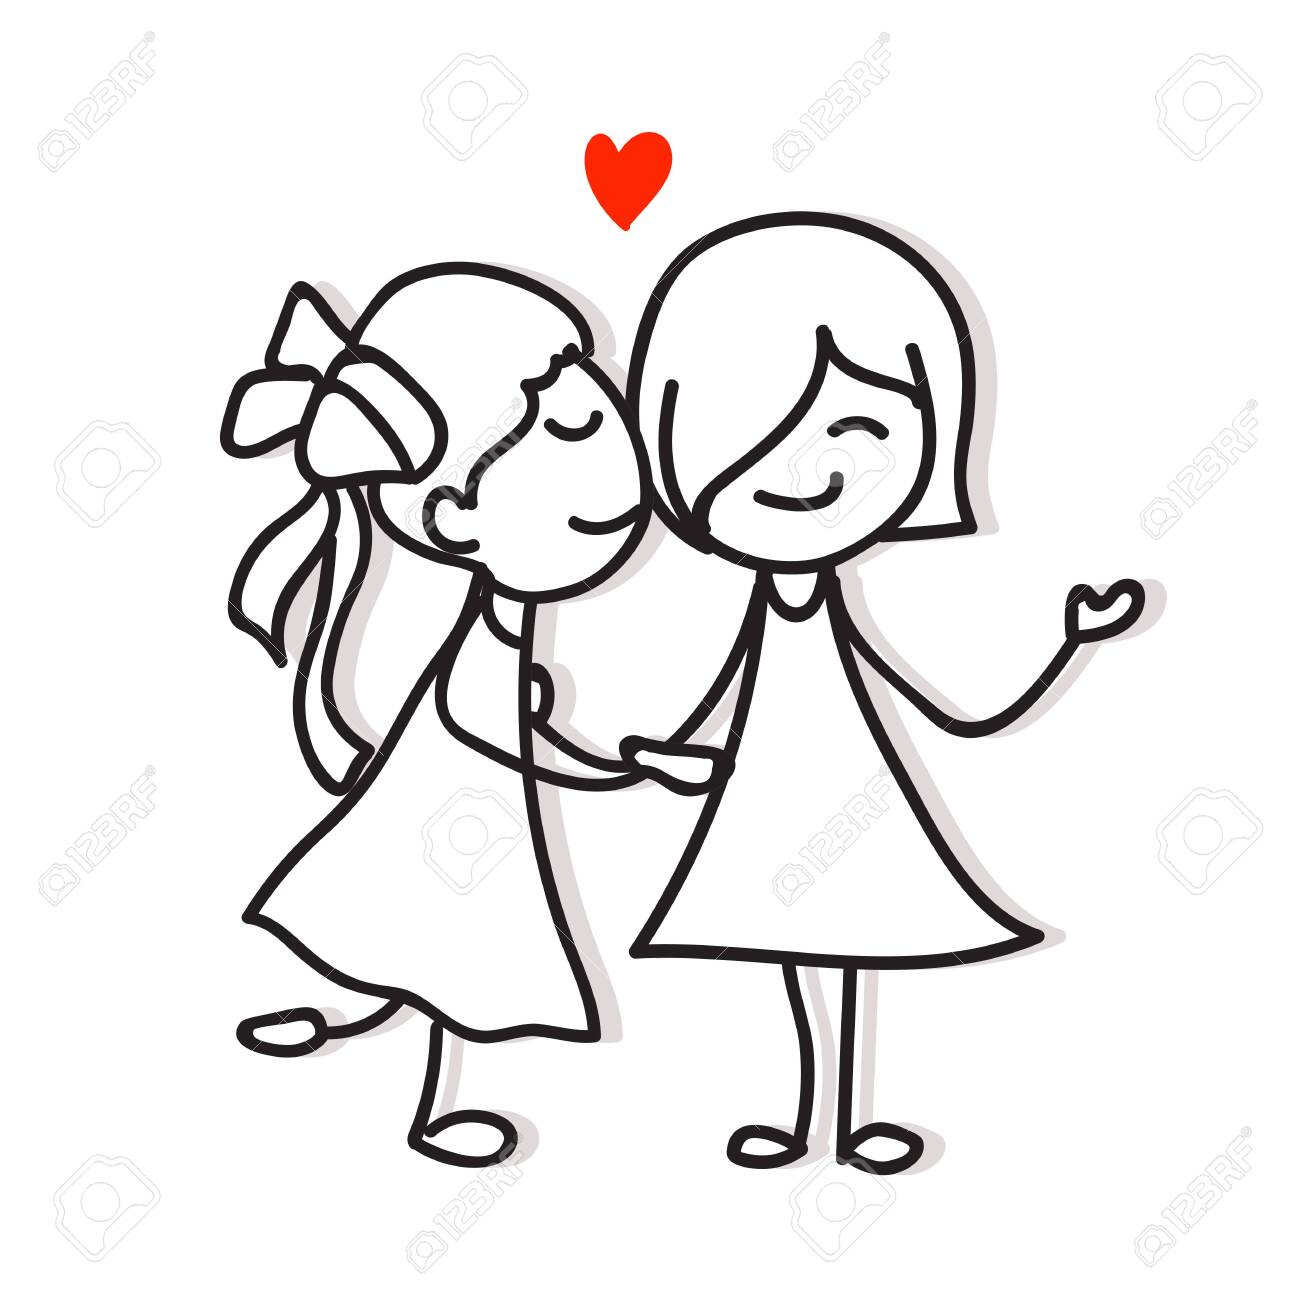 Same Sex Couple Love Kiss And Holding Hand Hand Drawing Cartoon Royalty Free Cliparts Vectors And Stock Illustration Image 139900055